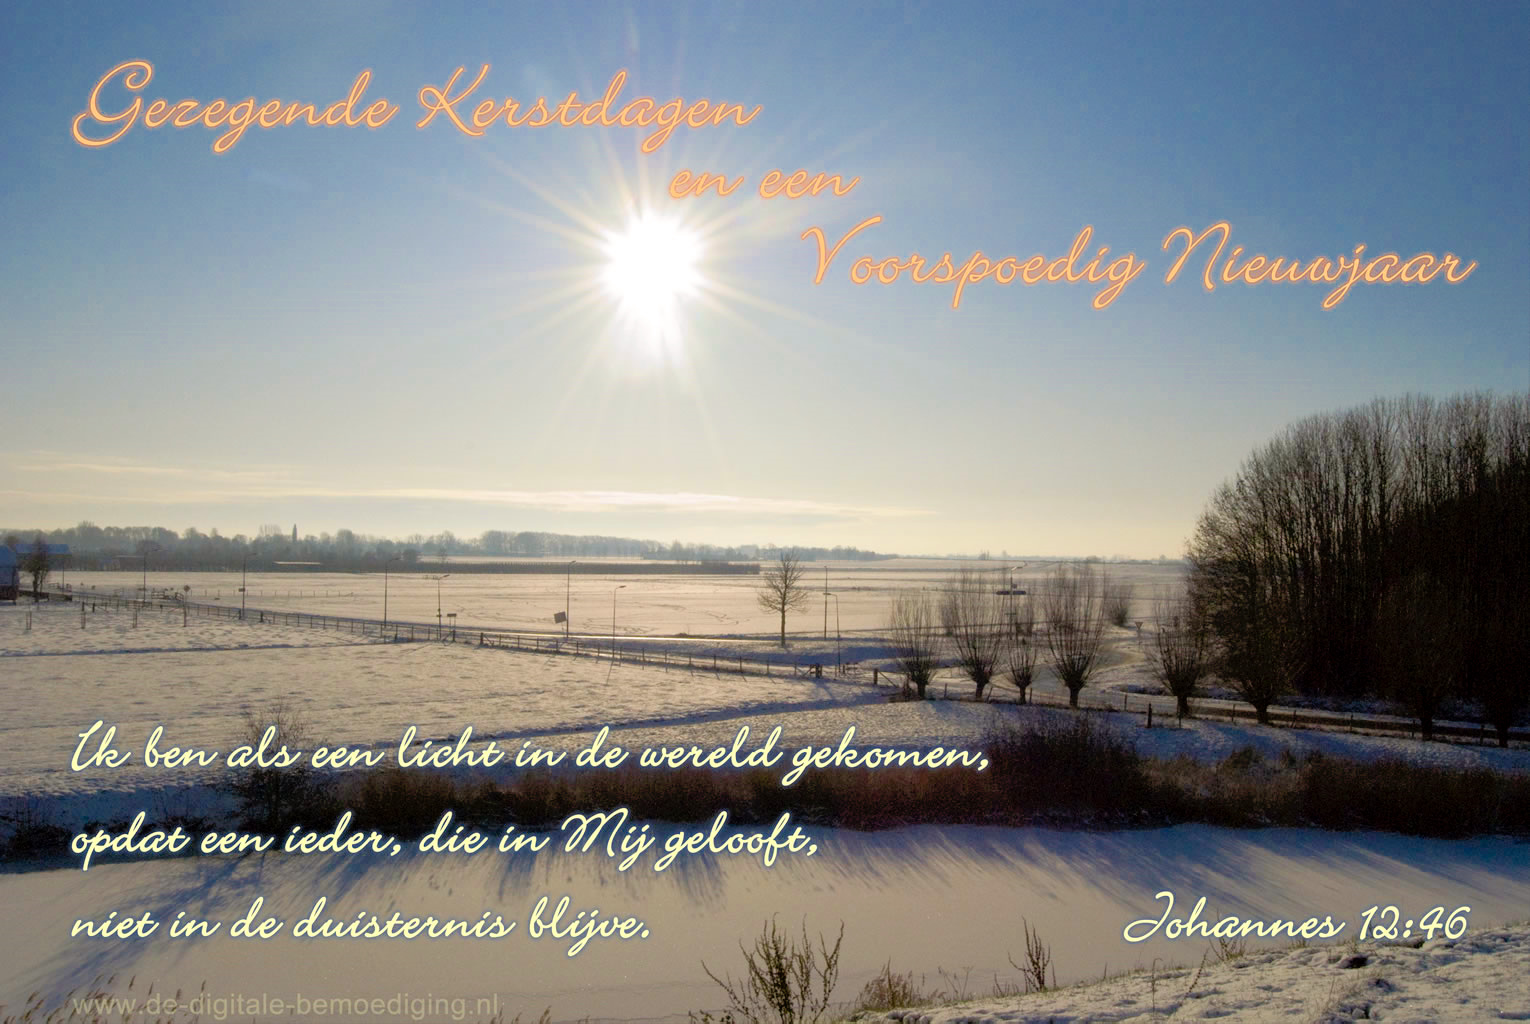 Gezegende Kerstdagen Ecard winter landschap